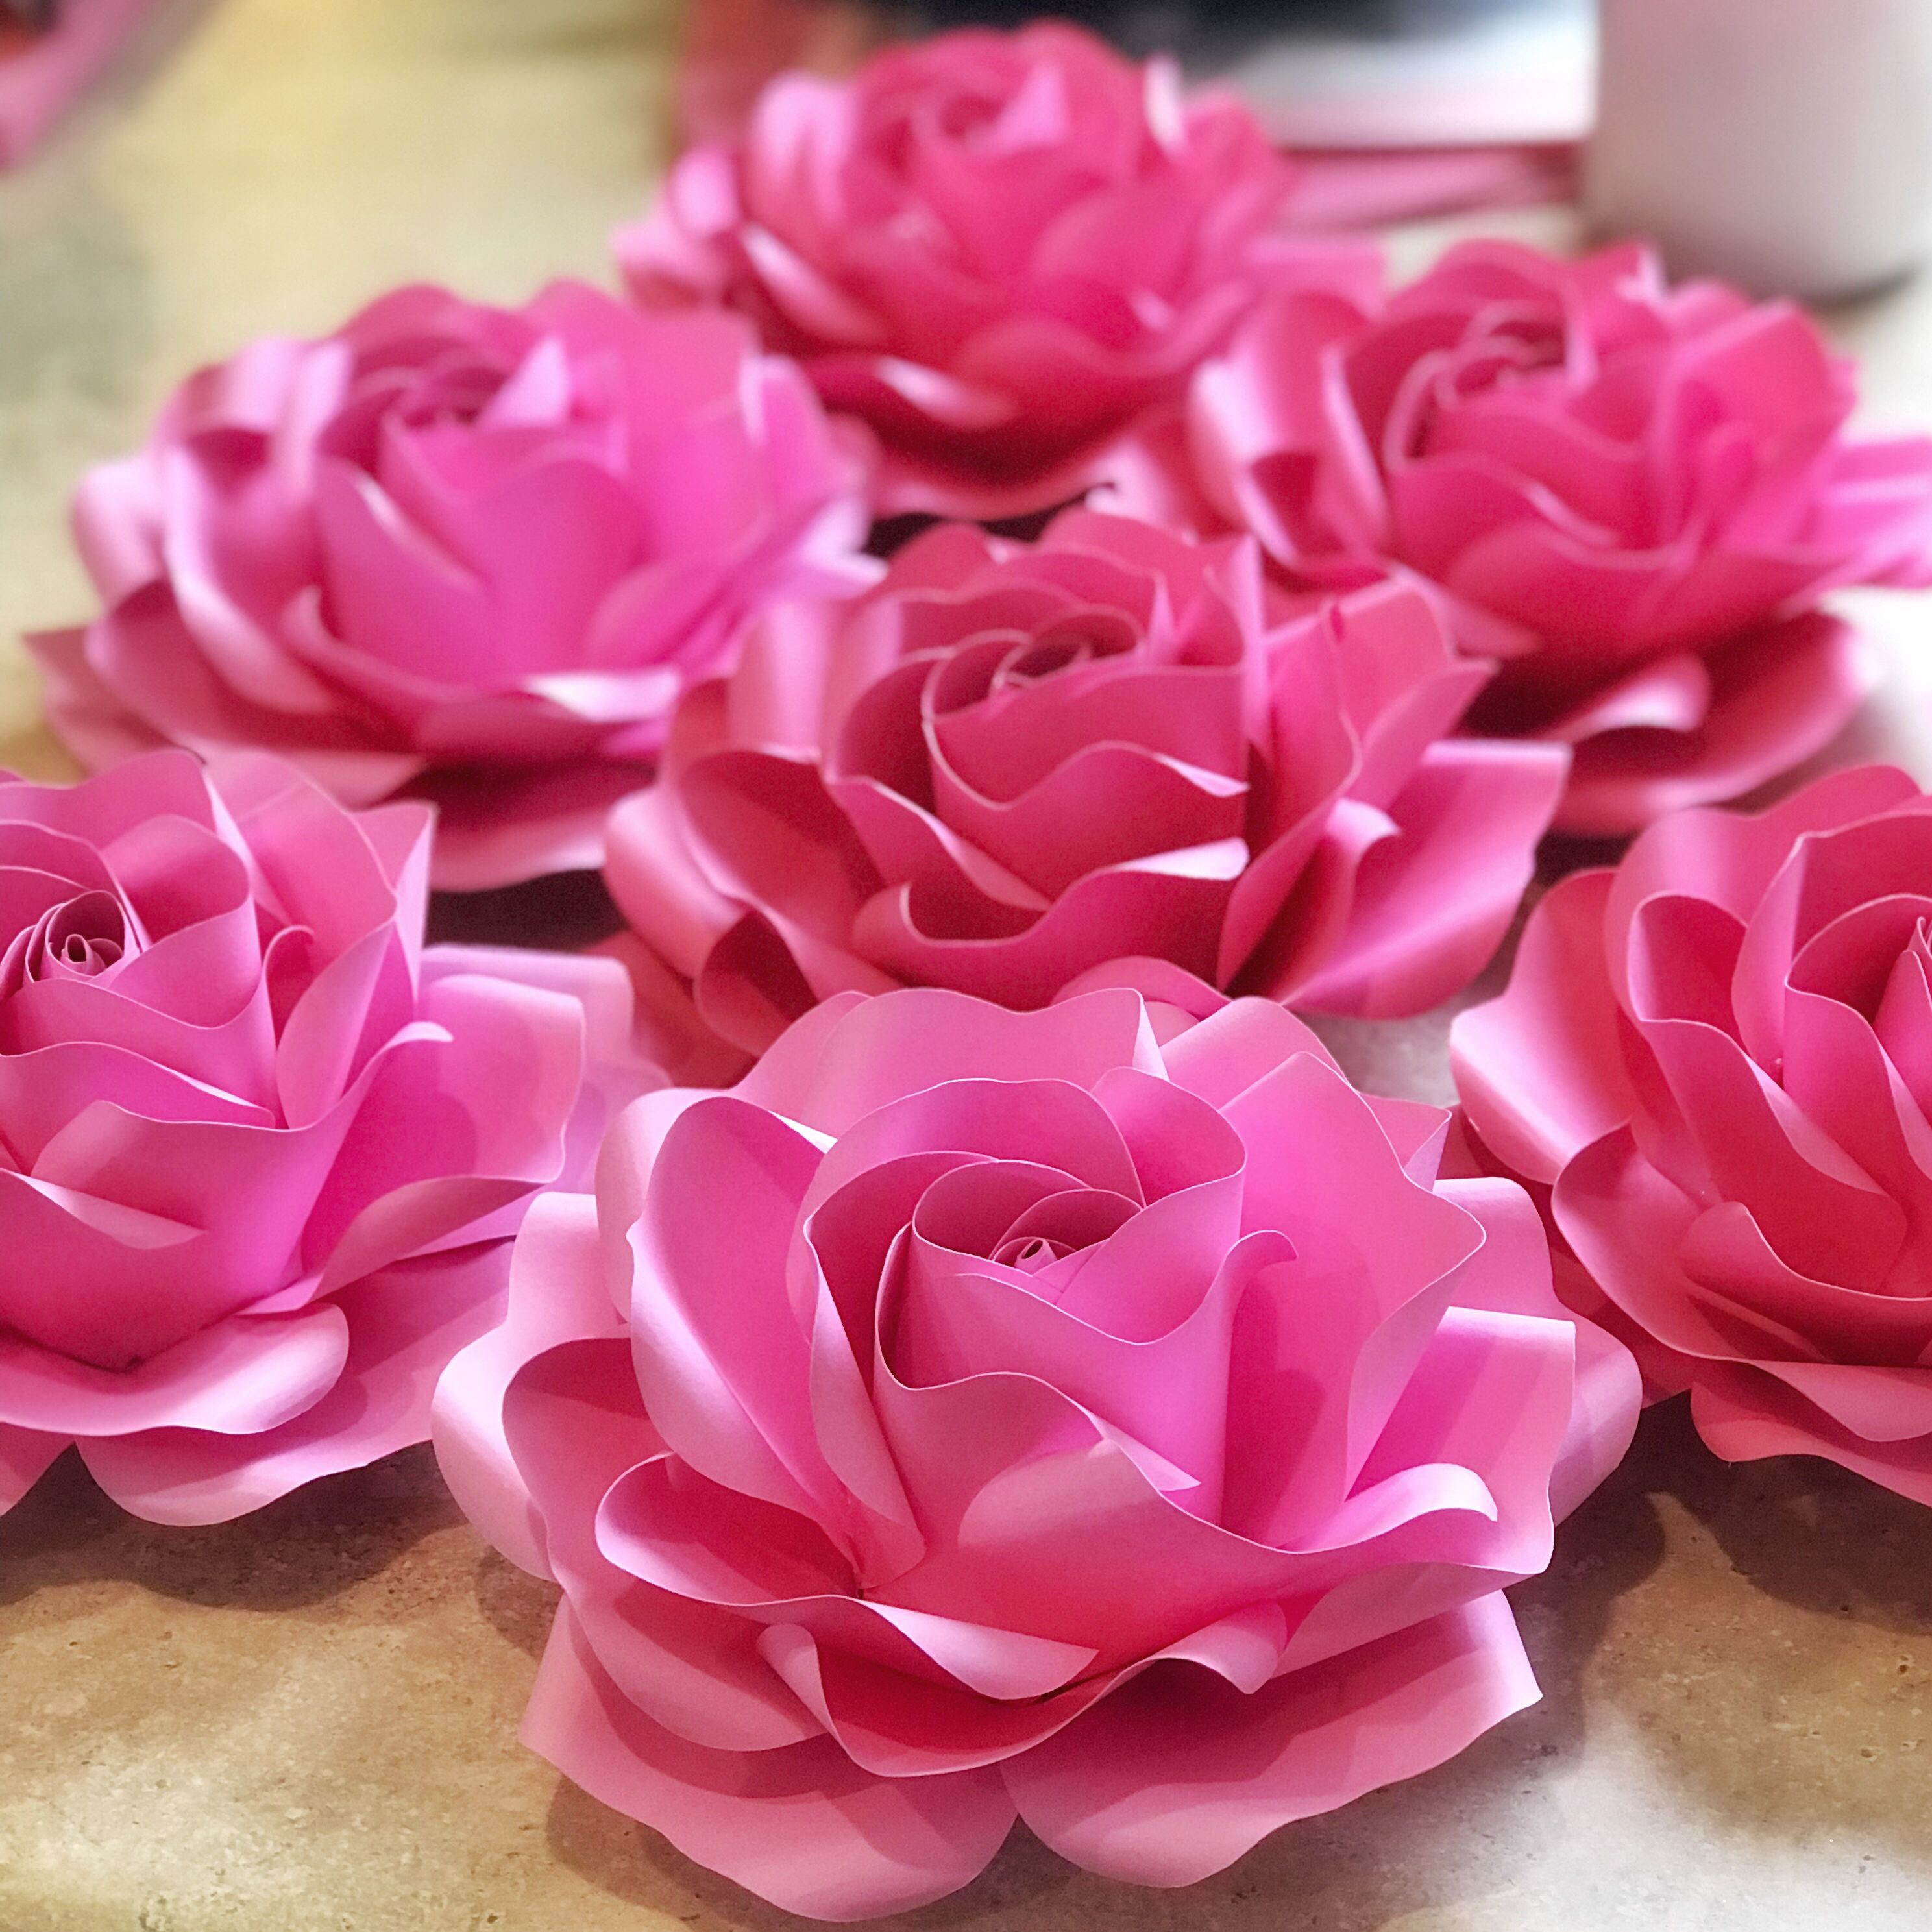 New Baby Rose Template In 5 Different Sizes Paper Flower Templates